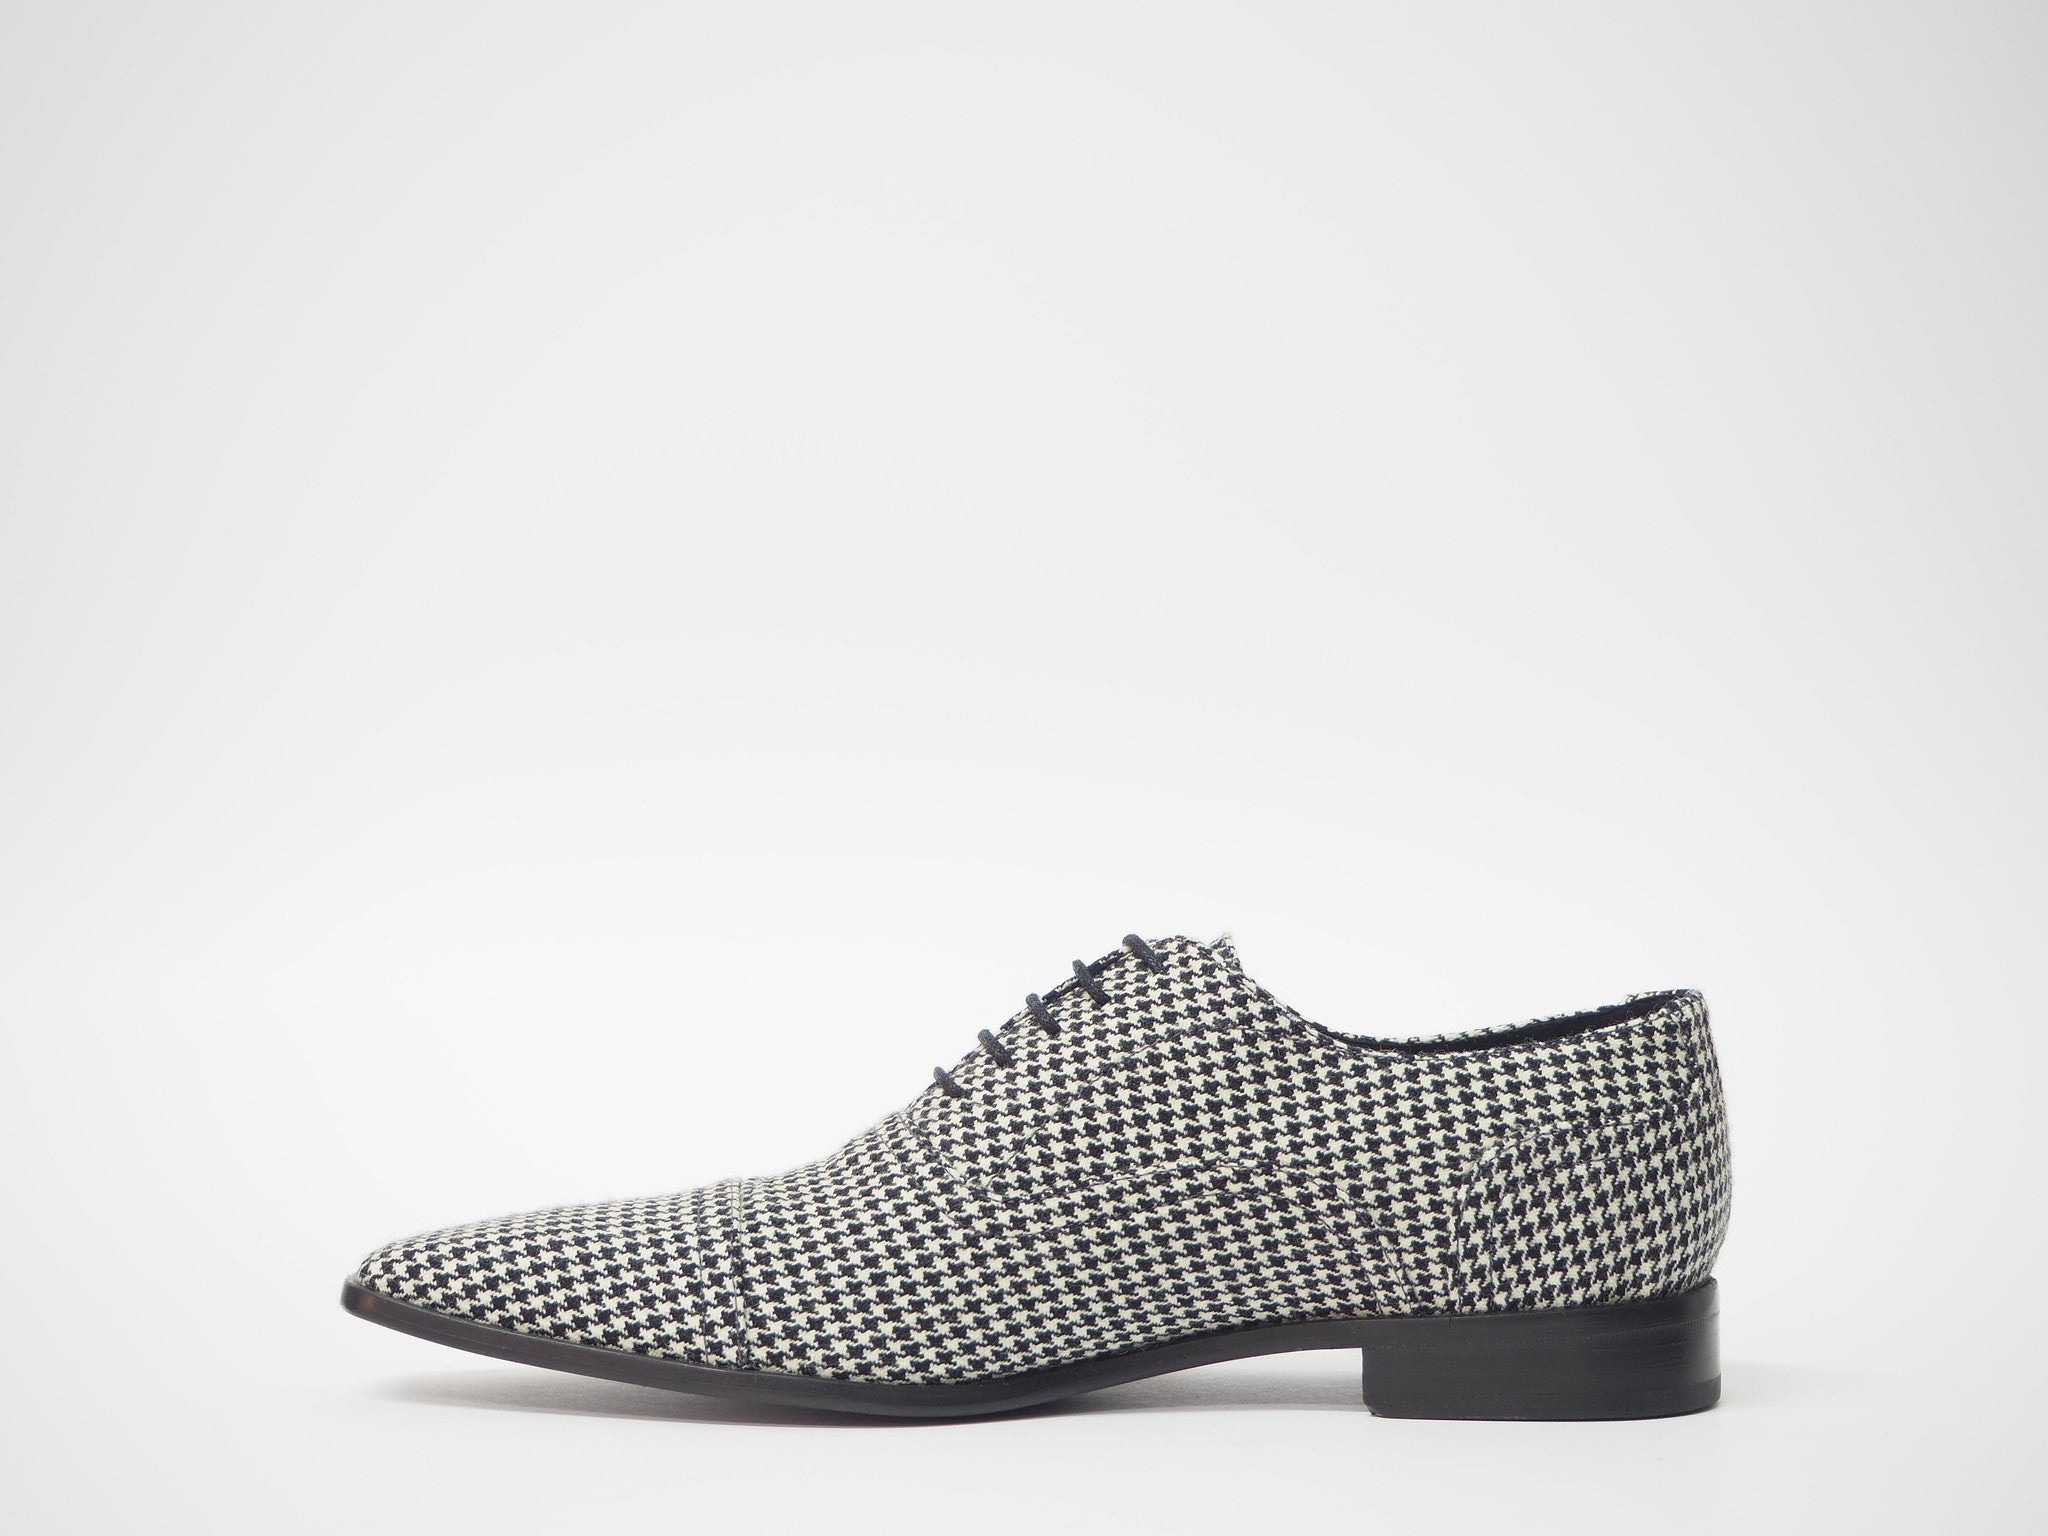 Size 44 - Black & White Pied de Poule Oxford + Belt